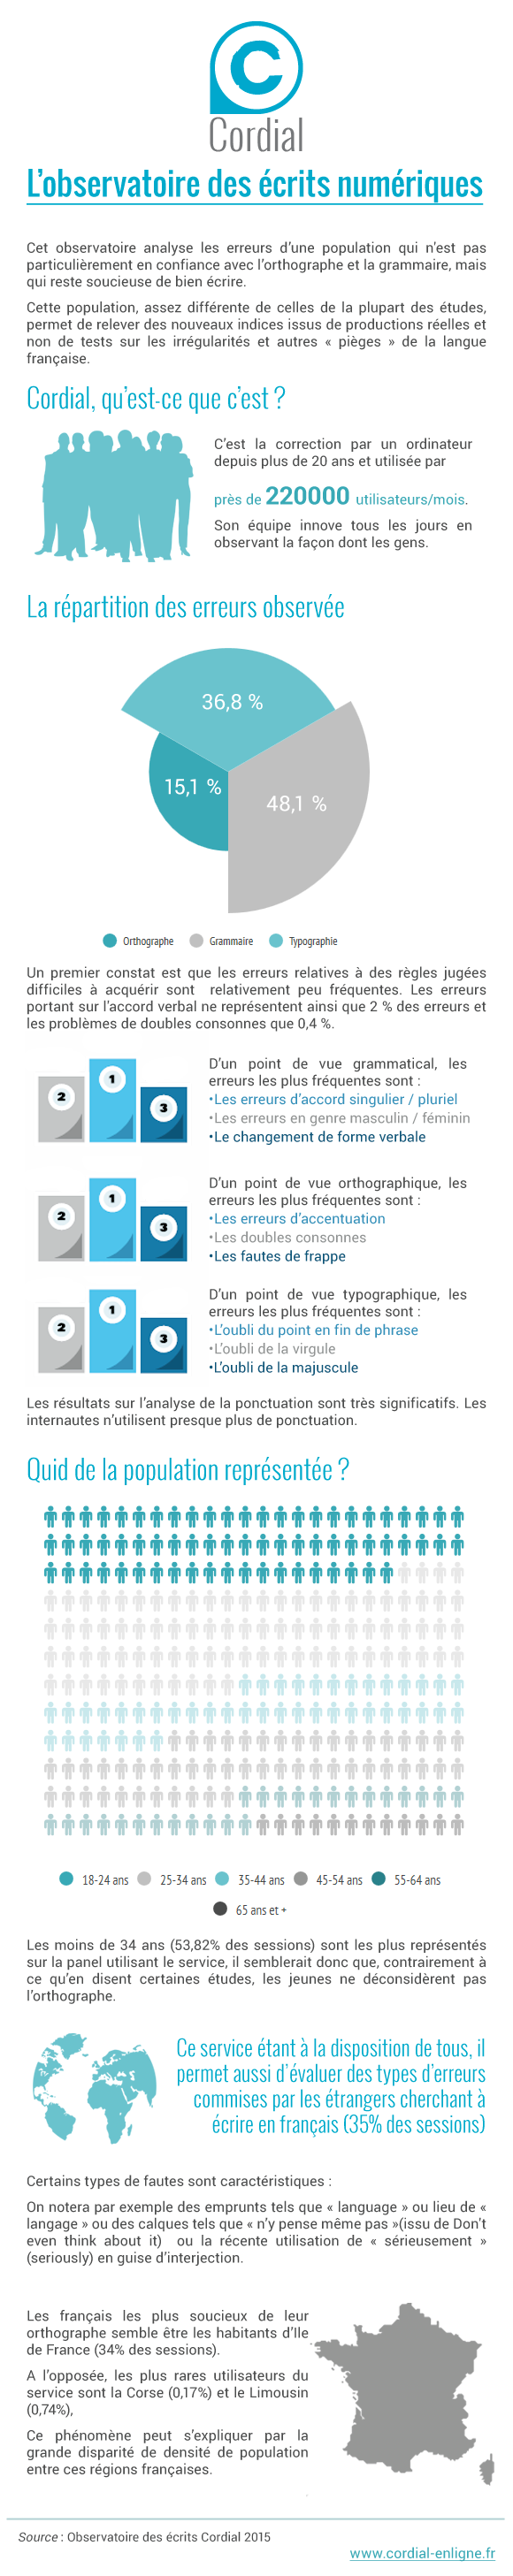 Cordial-Infographie